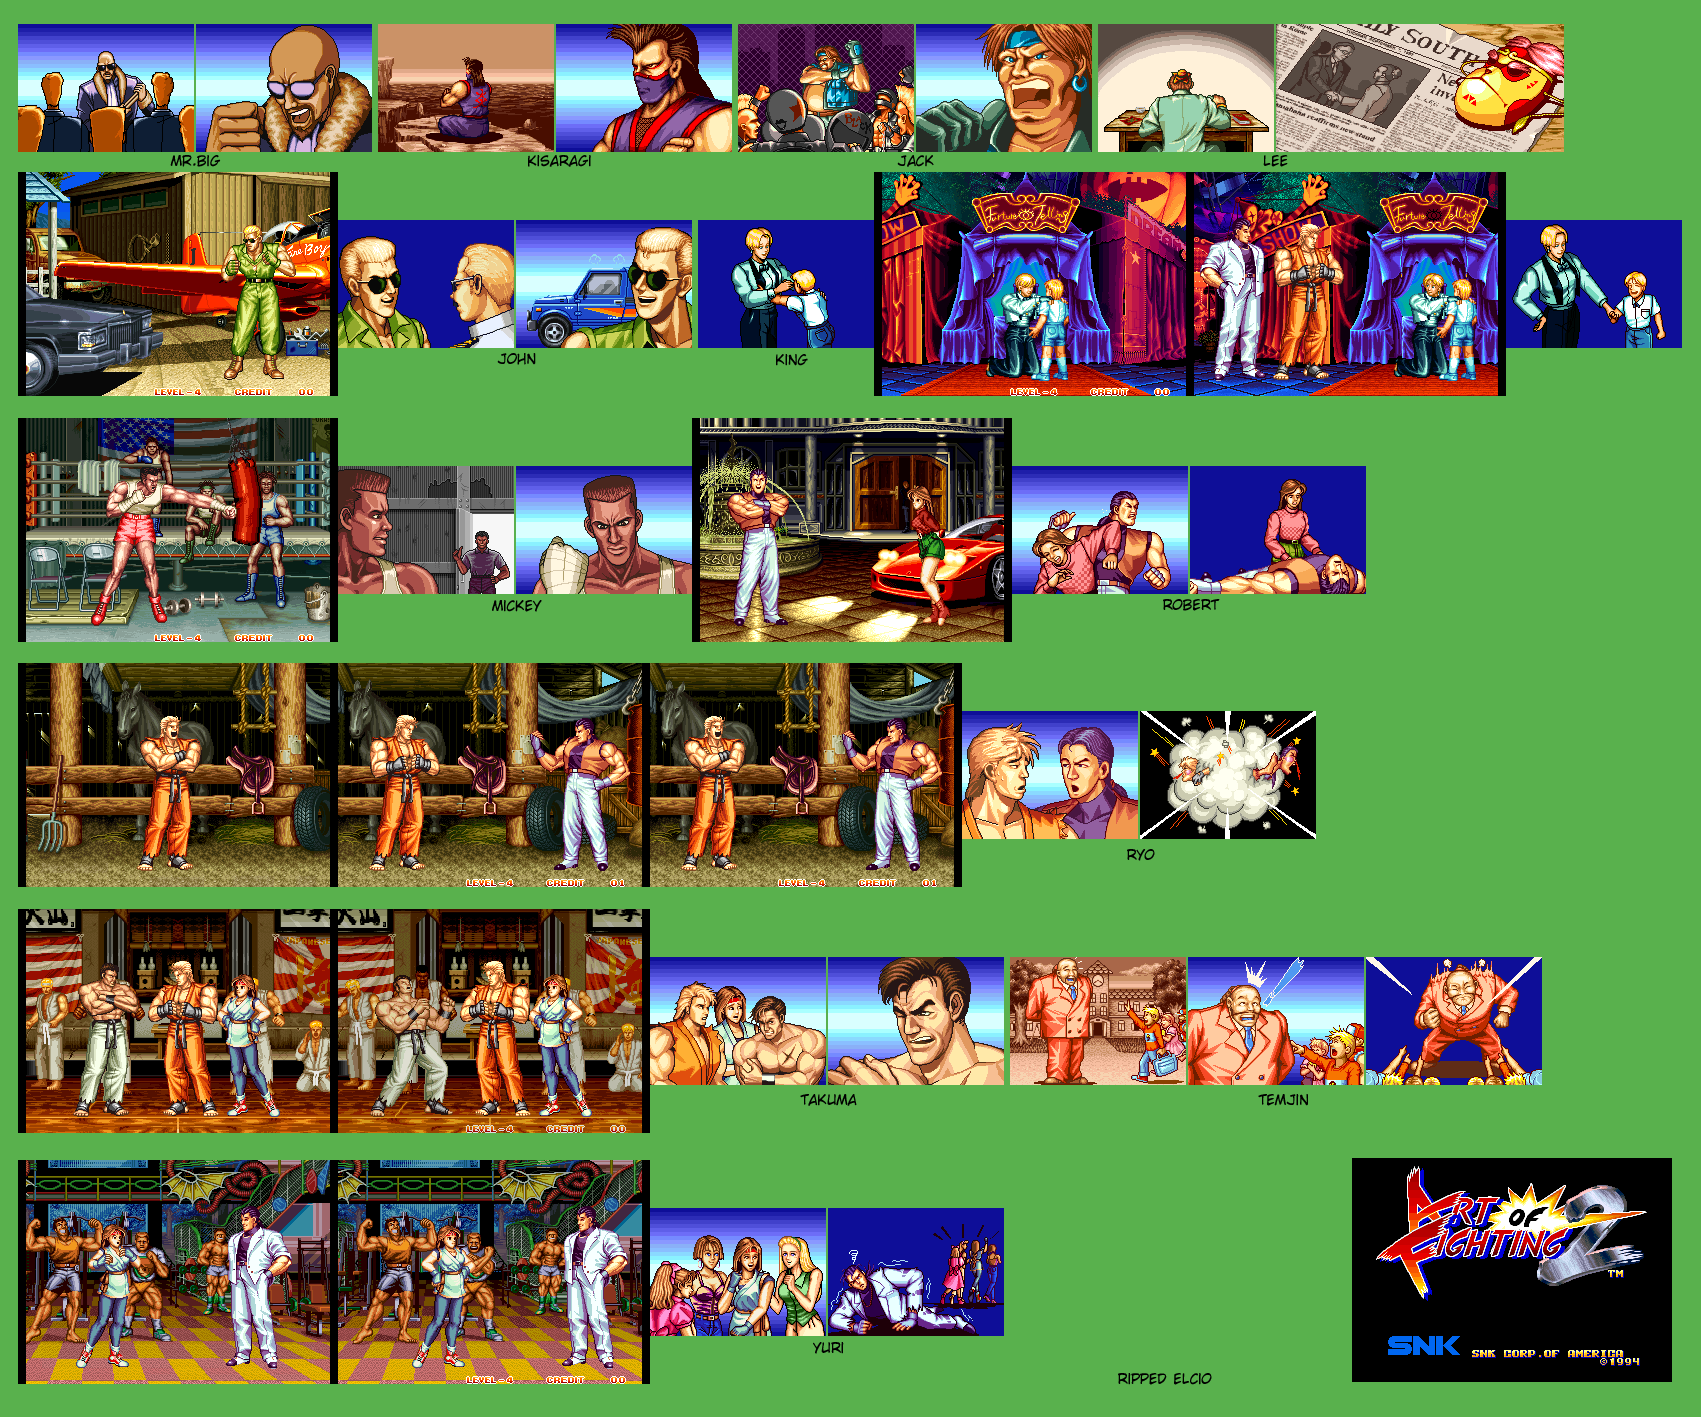 Art of Fighting 2 - Endings